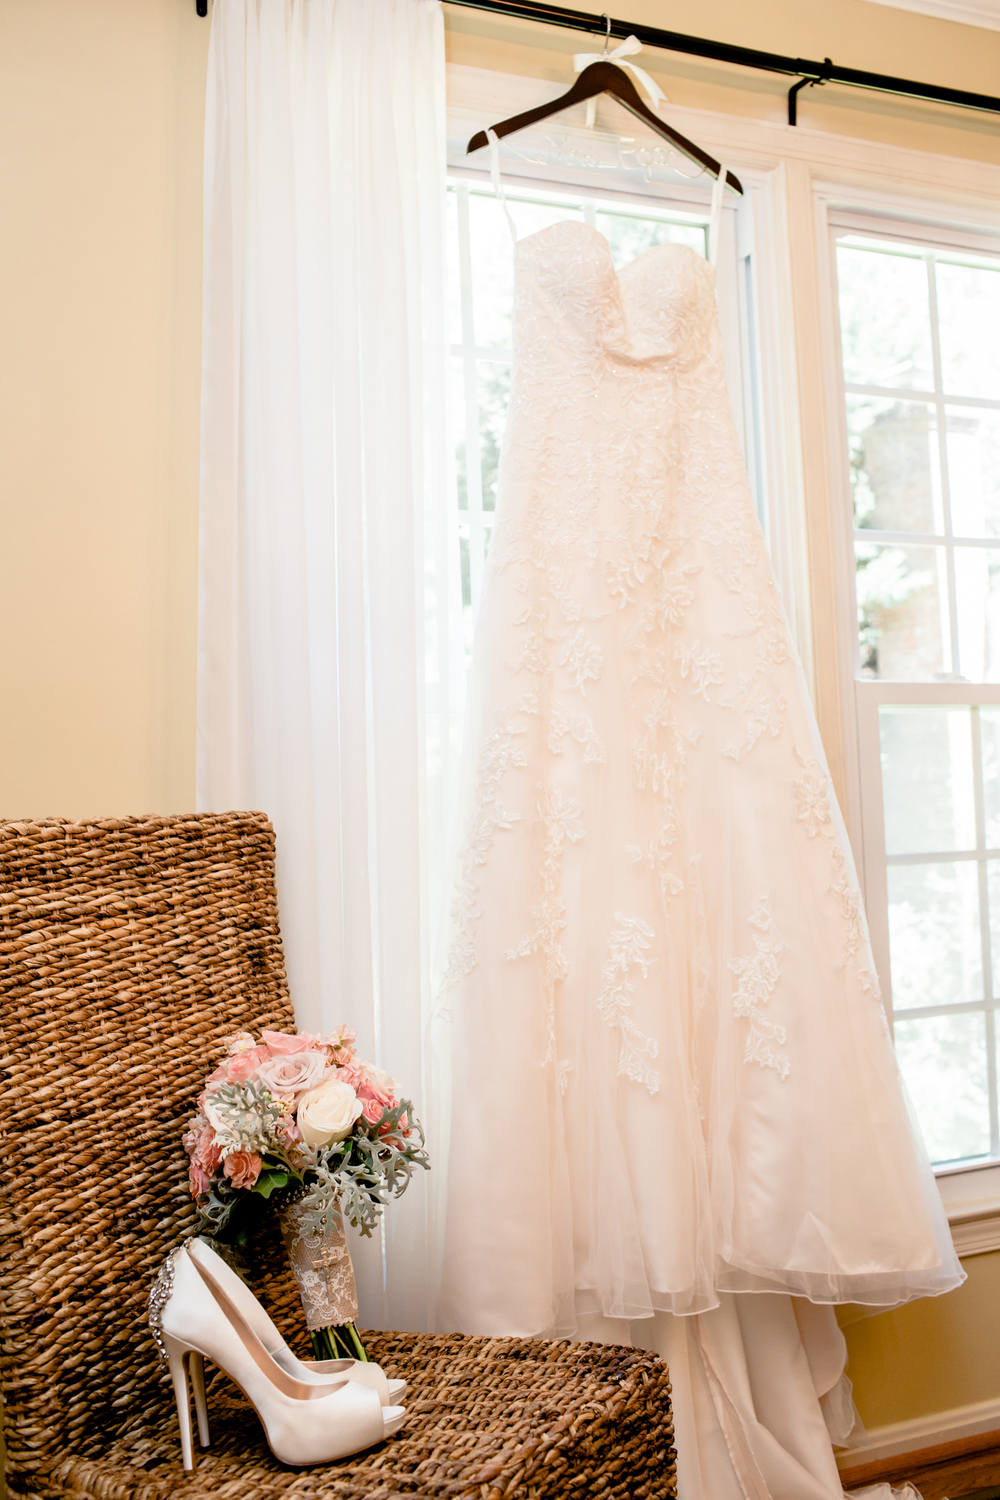 Whitehall_Estate_Wedding_Katlyn&Mike_Wed-193.JPG